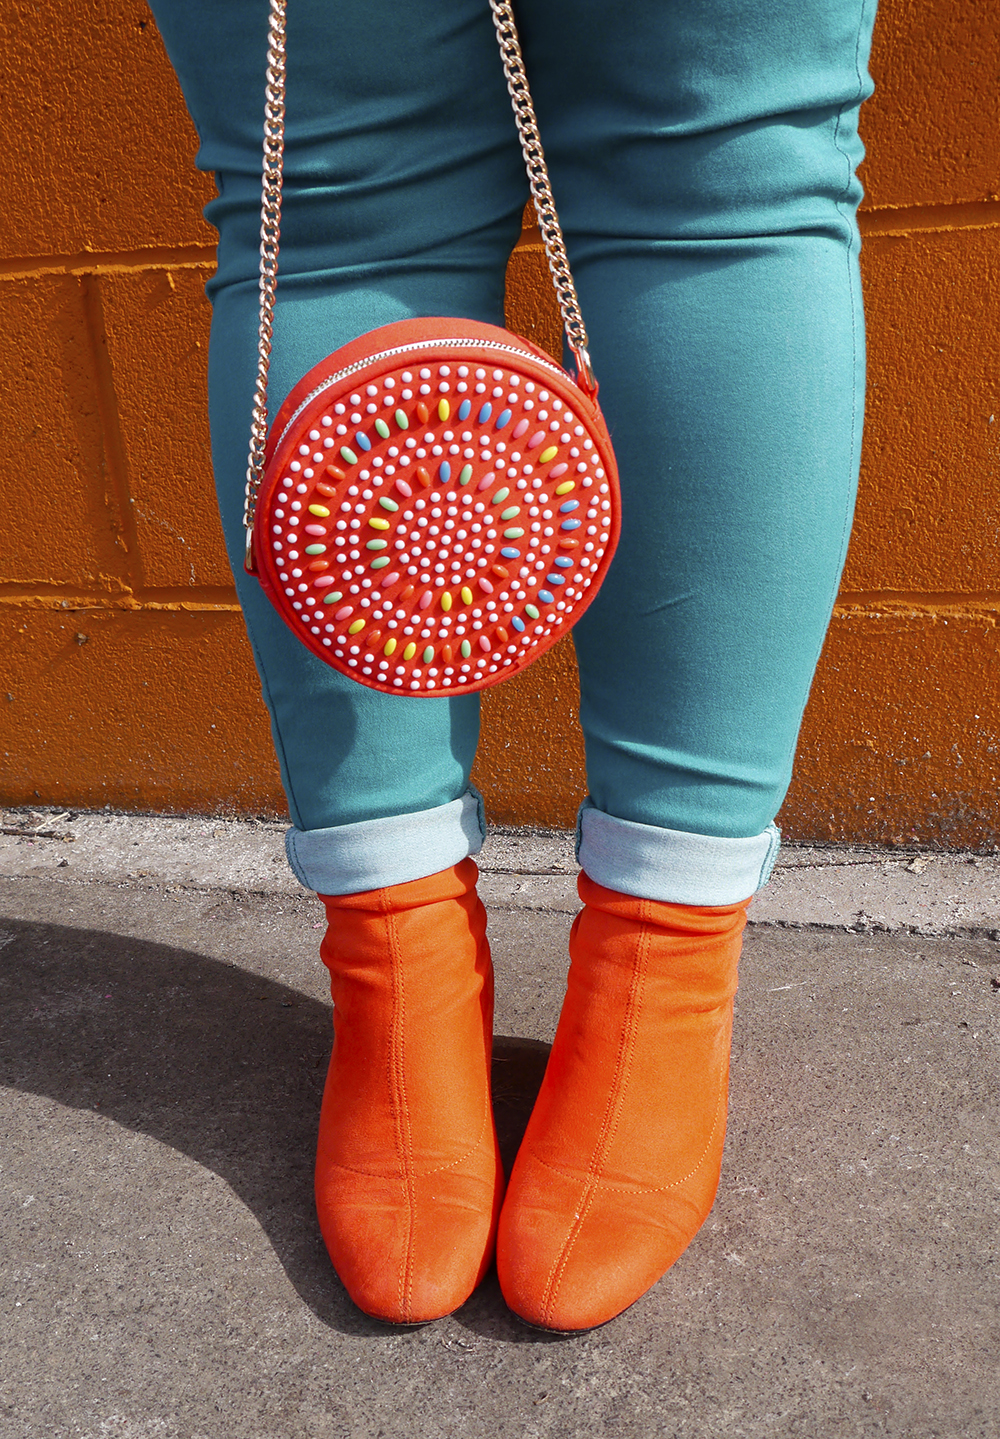 Colourful Play Purse beaded bag matched with bright Topshop boots